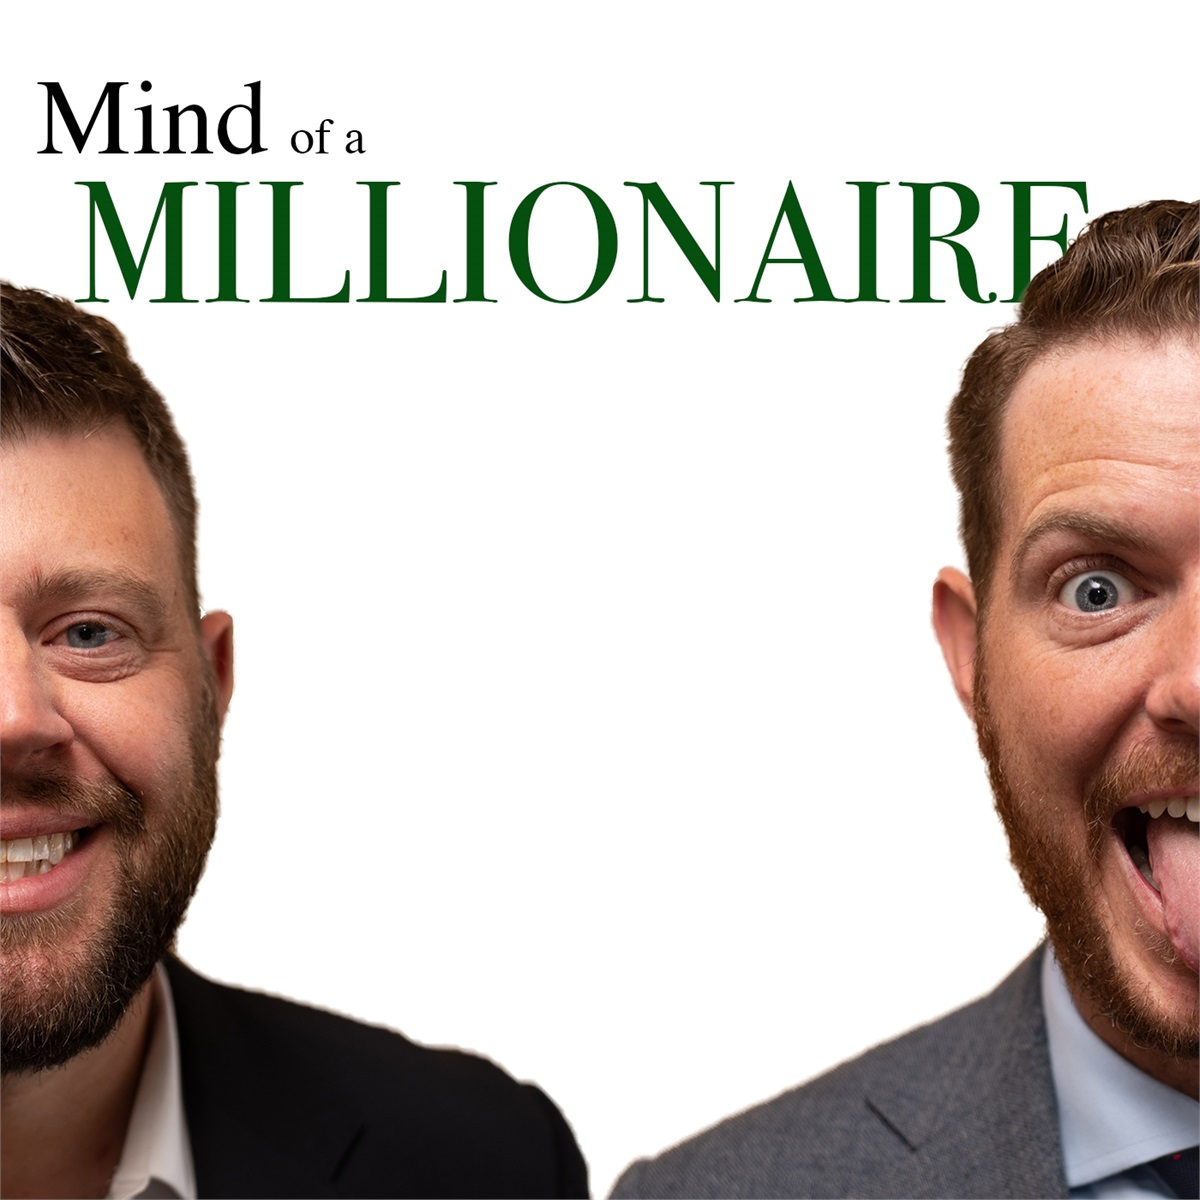 Mind of a Millionaire: What Are Some Expenses College Graduates Tend to Underestimate?